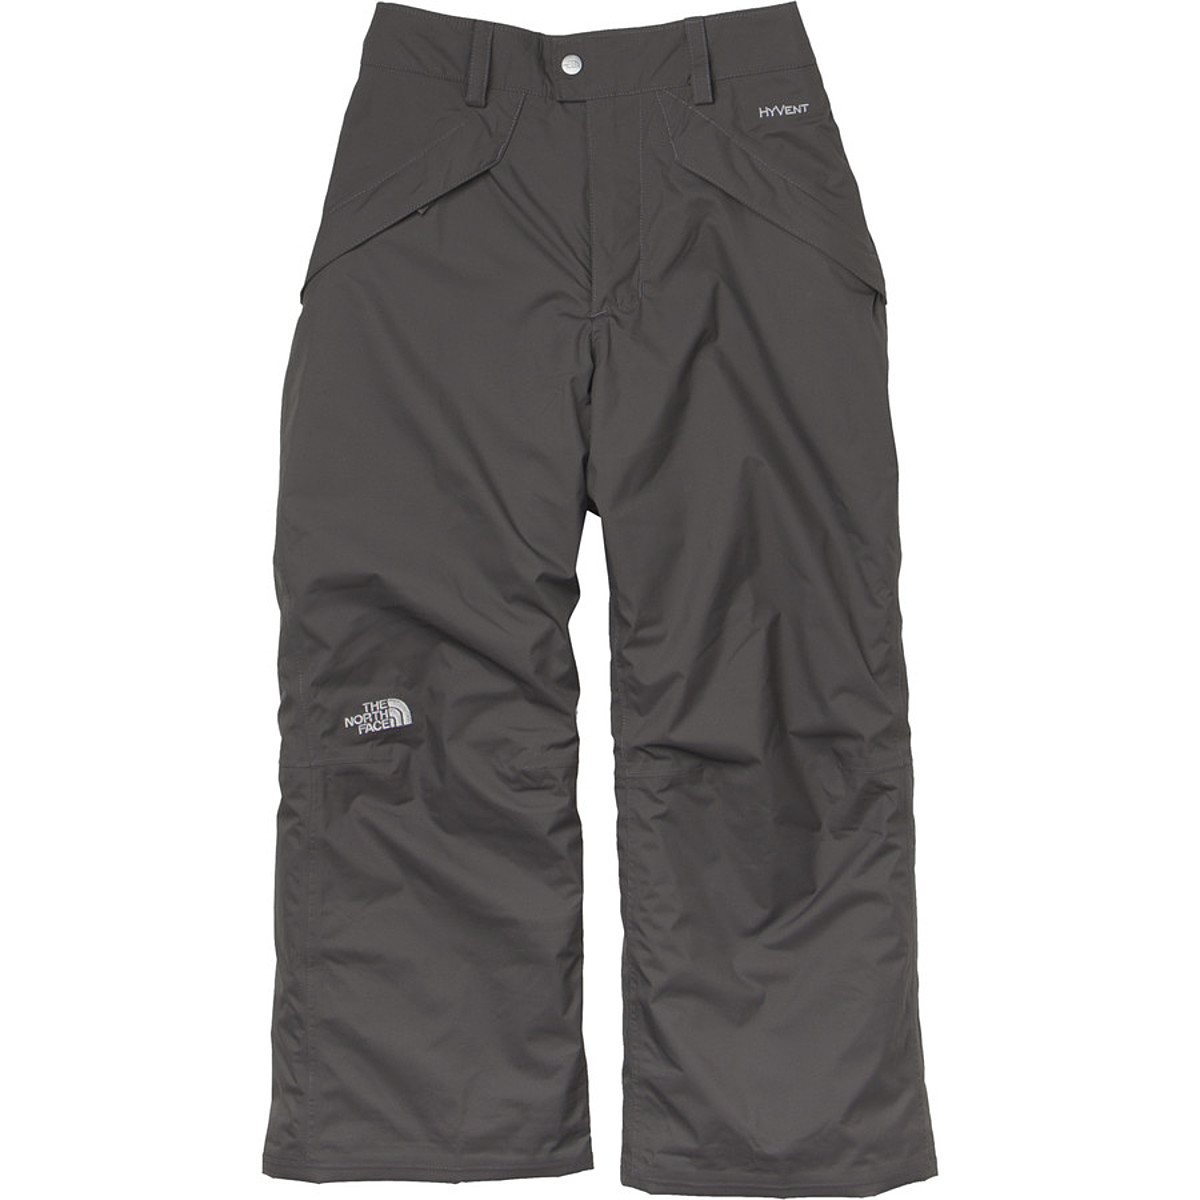 The North Face Seymore Insulated Pant